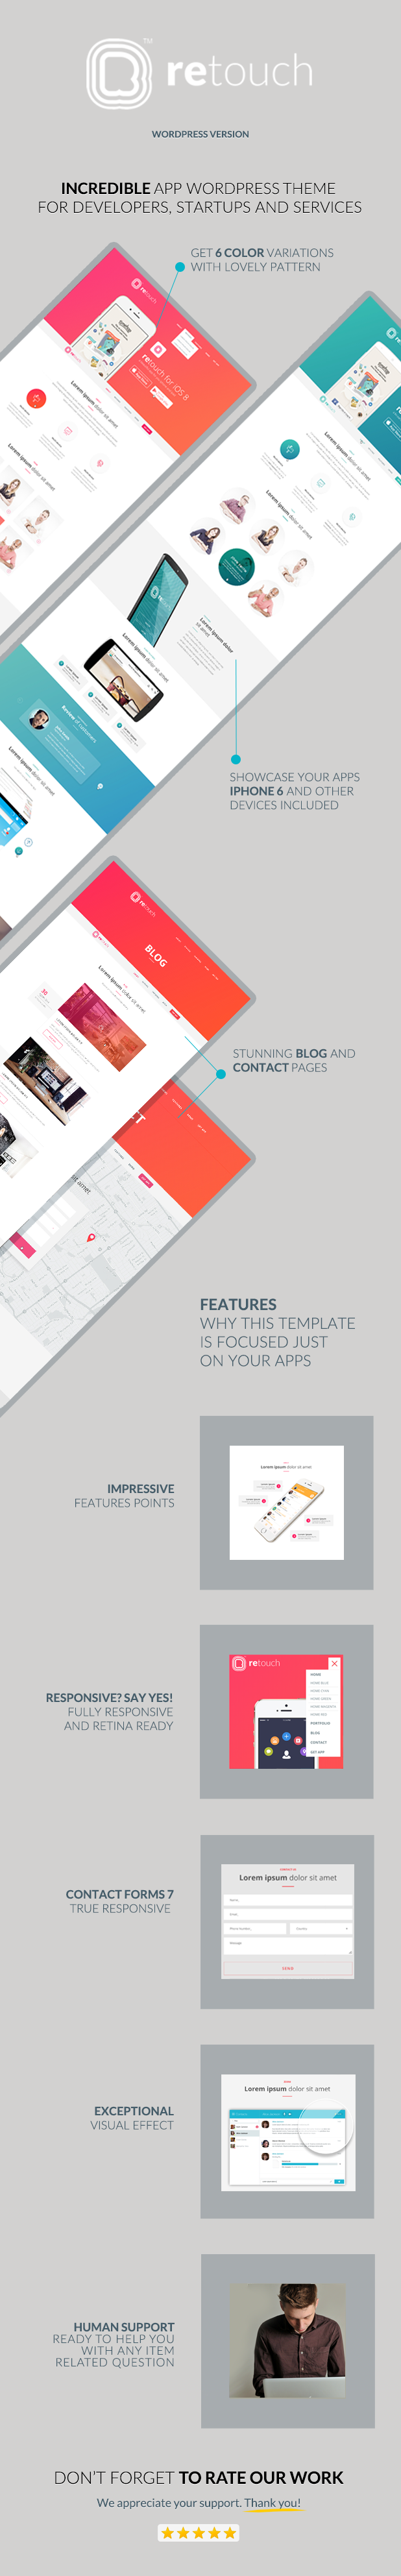 ReTouch - App WordPress Theme - 3